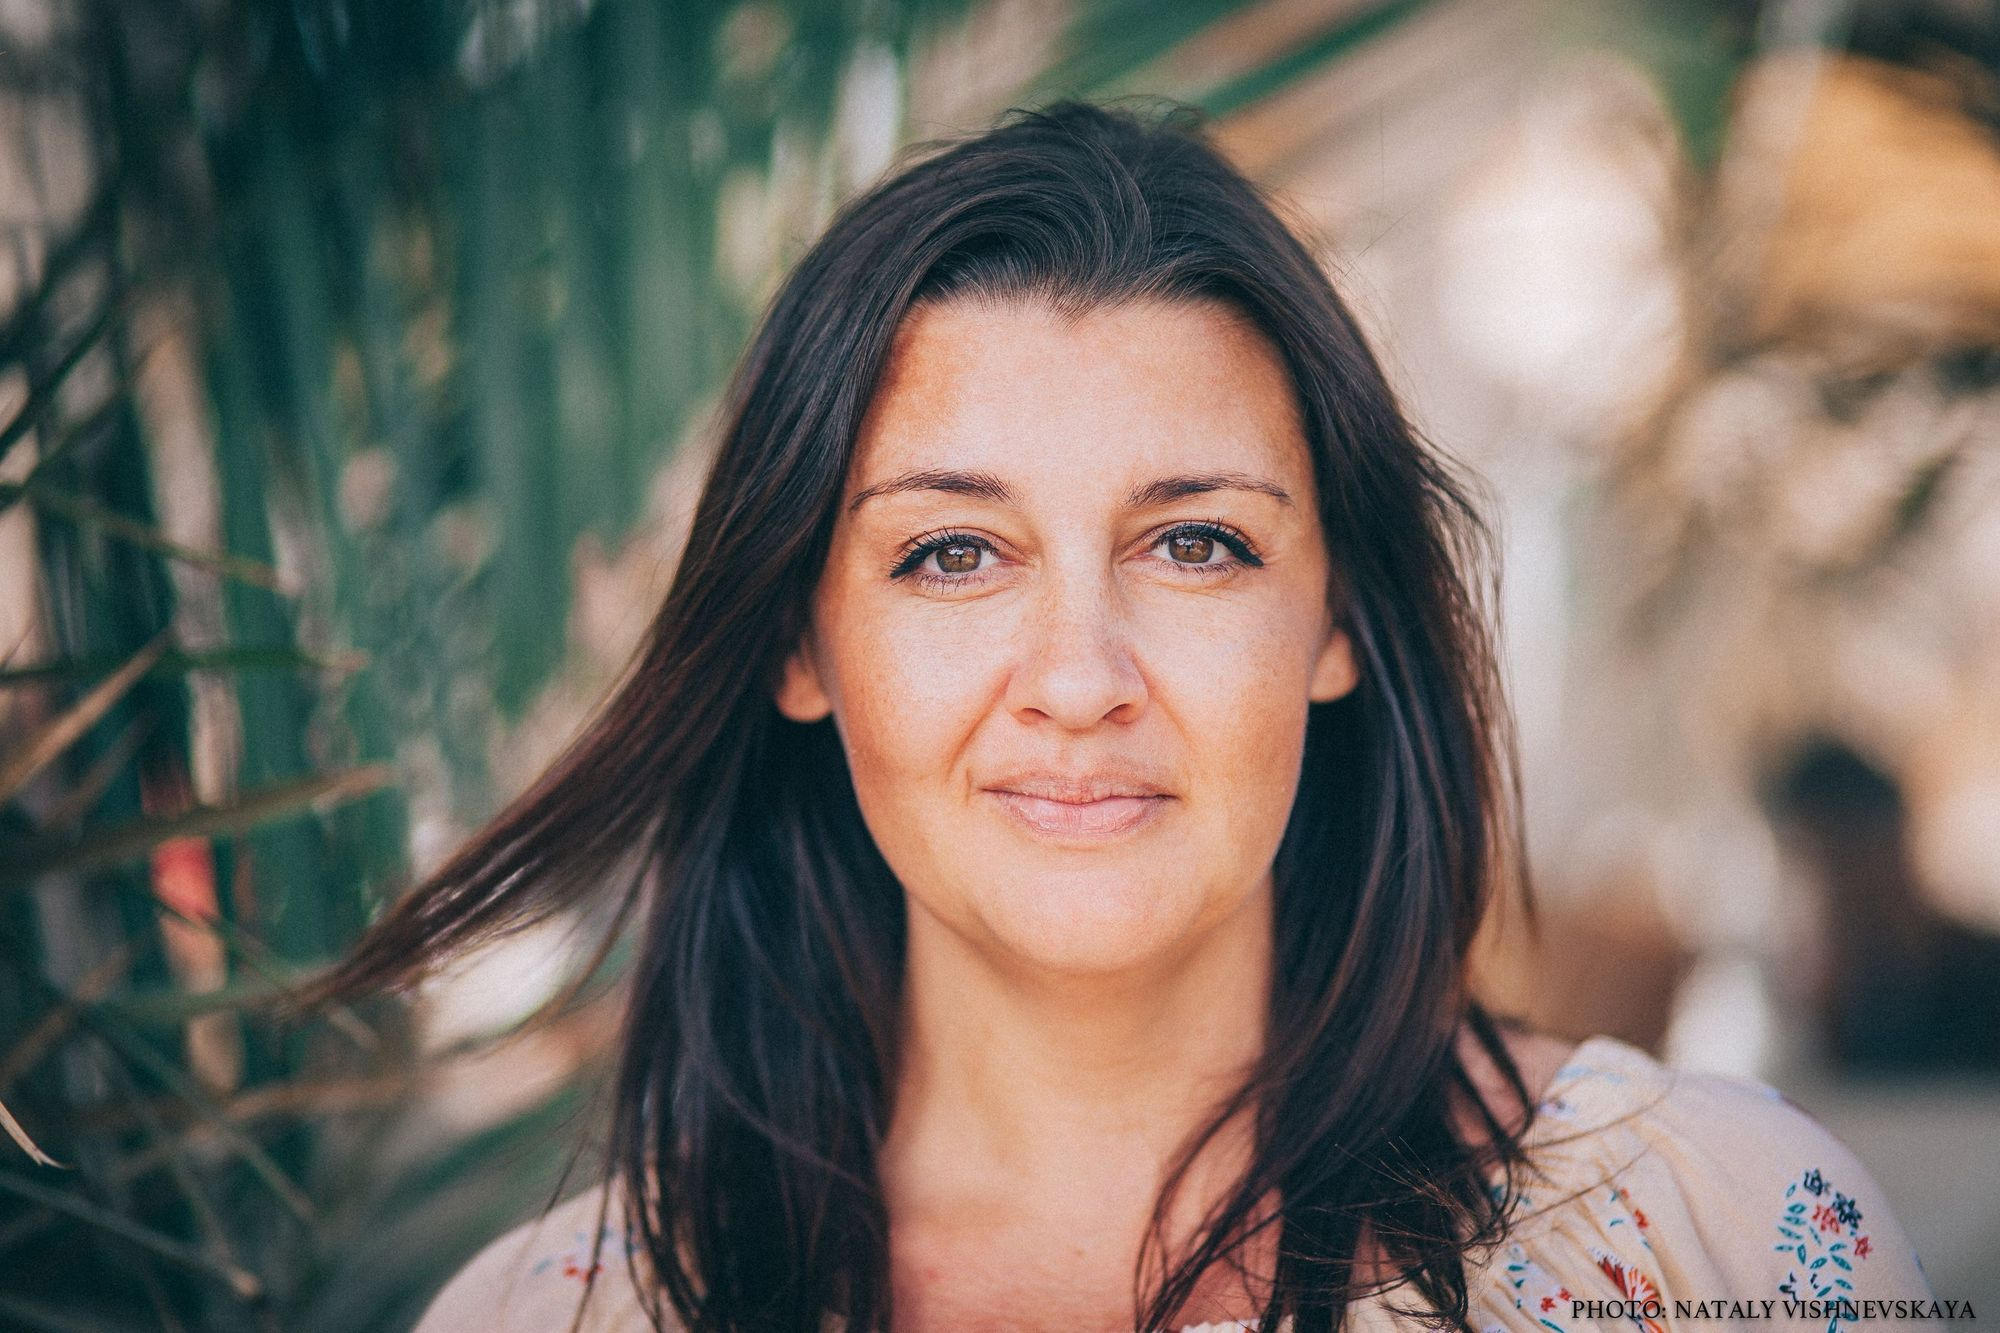 Remote Work Story of Michelle Dale - Founder of Virtual Miss Friday and Creator of 1nSourcing